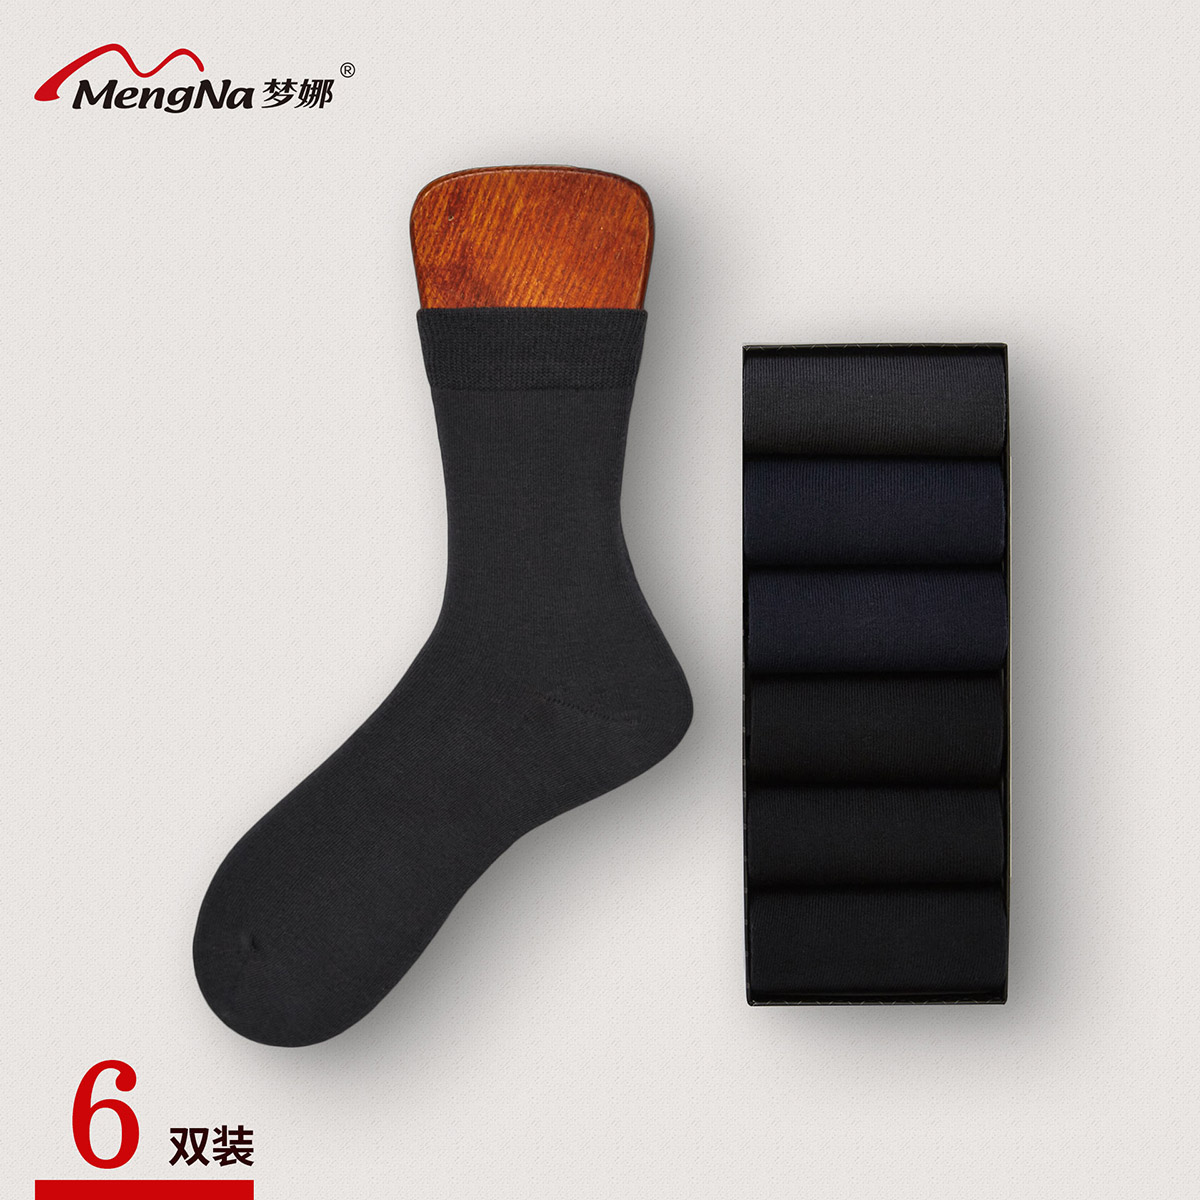 Mona genuine classic solid color simple men and breathable and comfortable men's socks in tube socks deodorant sweat socks 6 pairs of dress